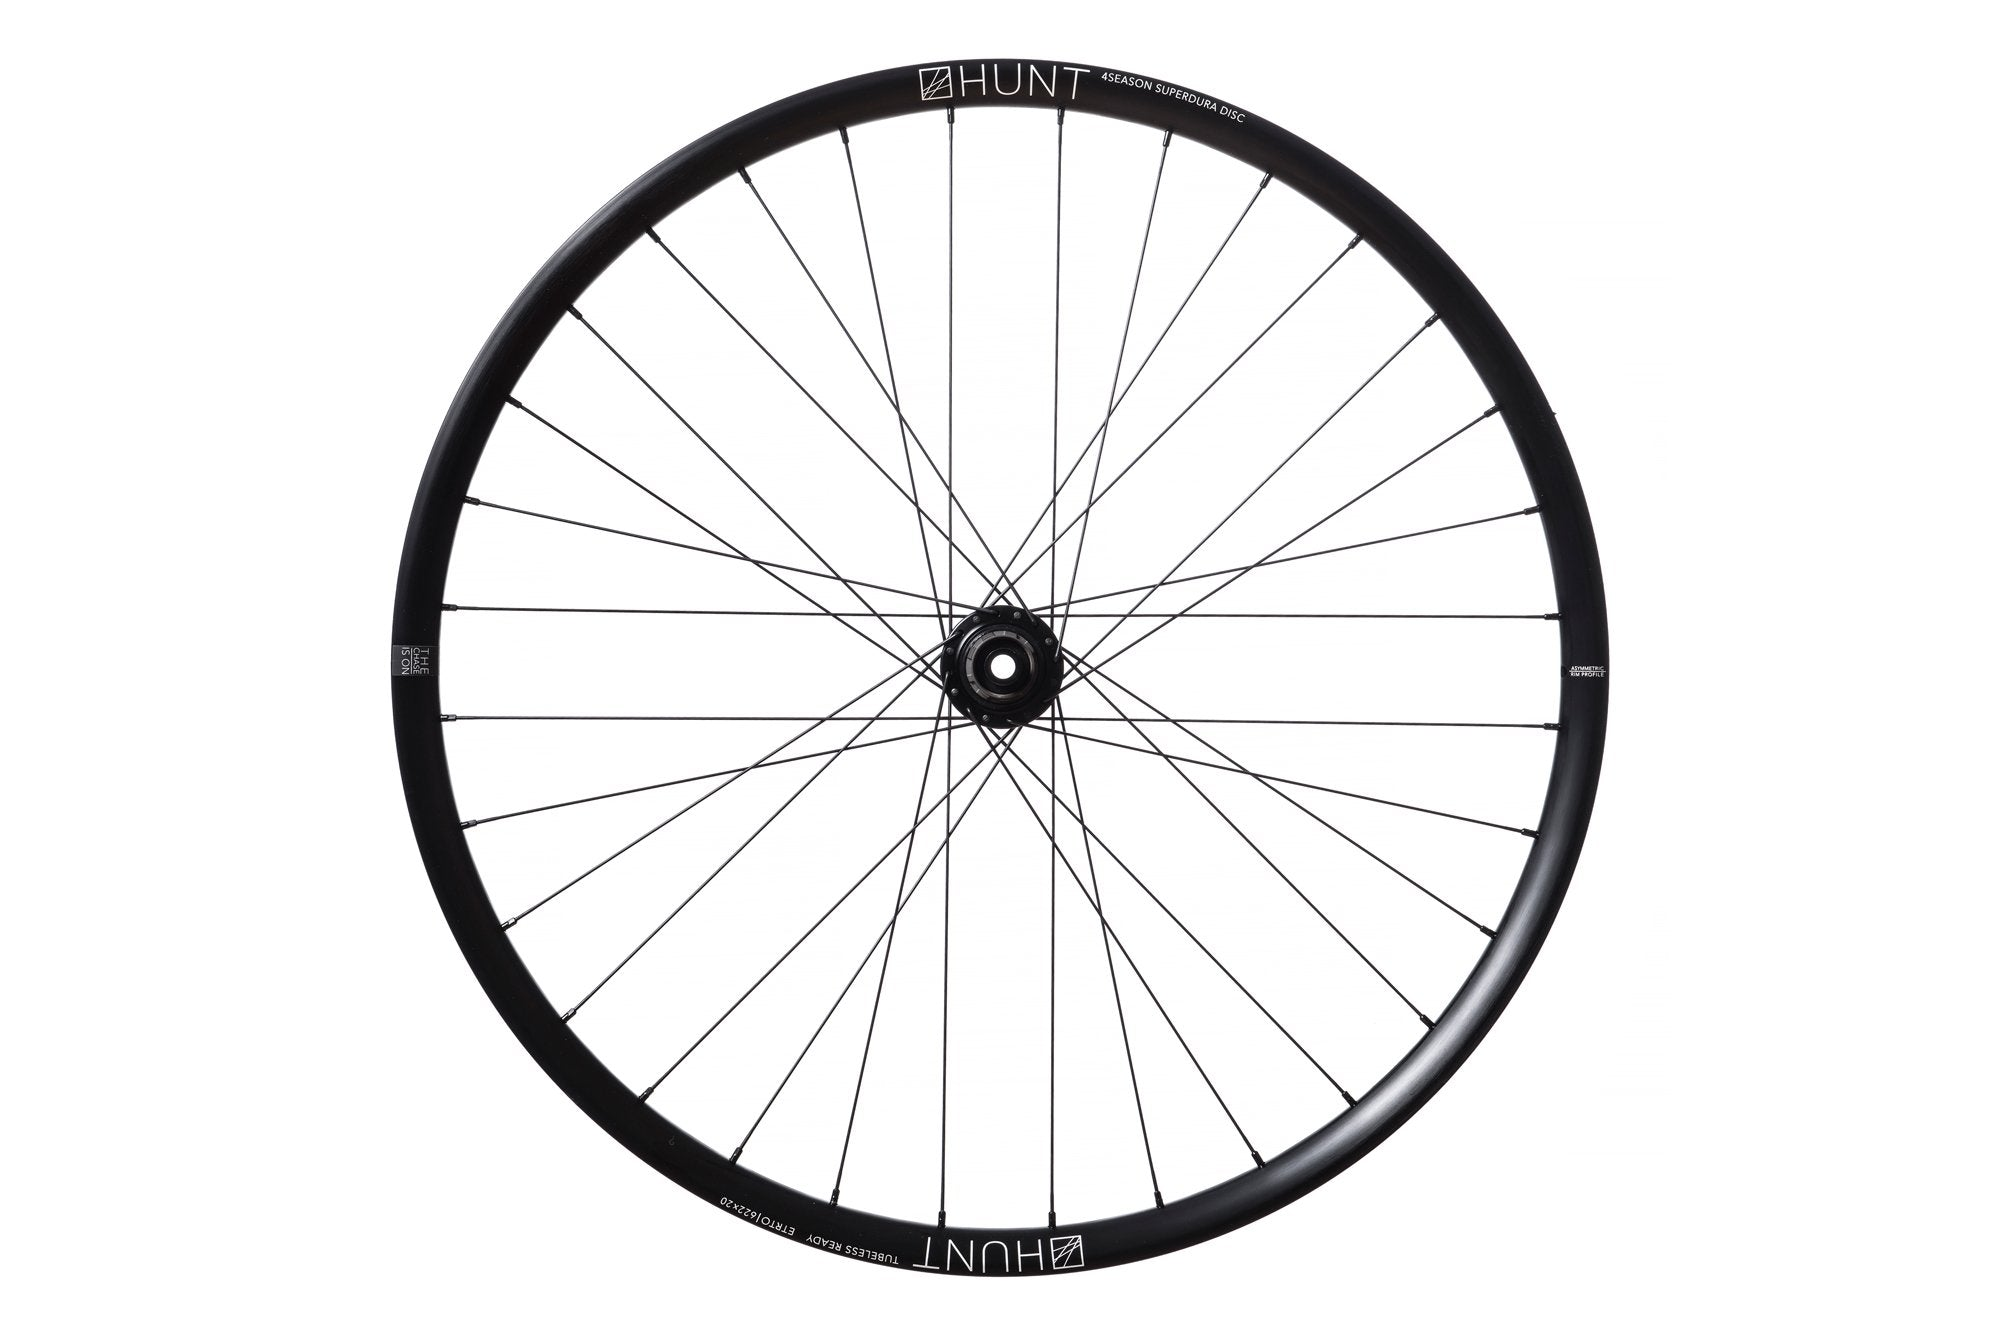 <html><h1>Spokes</h1><i>We chose the top-of-the-range Pillar Spoke Re-enforcement PSR XTRA models. These butted spokes are lighter and provide a greater degree of elasticity to maintain tensions and add fatigue resistance. These PSR J-bend spokes feature the 2.2 width at the spoke head providing more material in this high stress area. The nipples come with a square head so you can achieve precise tensioning. Combining these components well is key which is why all Hunt wheels are hand-built.</i></html>